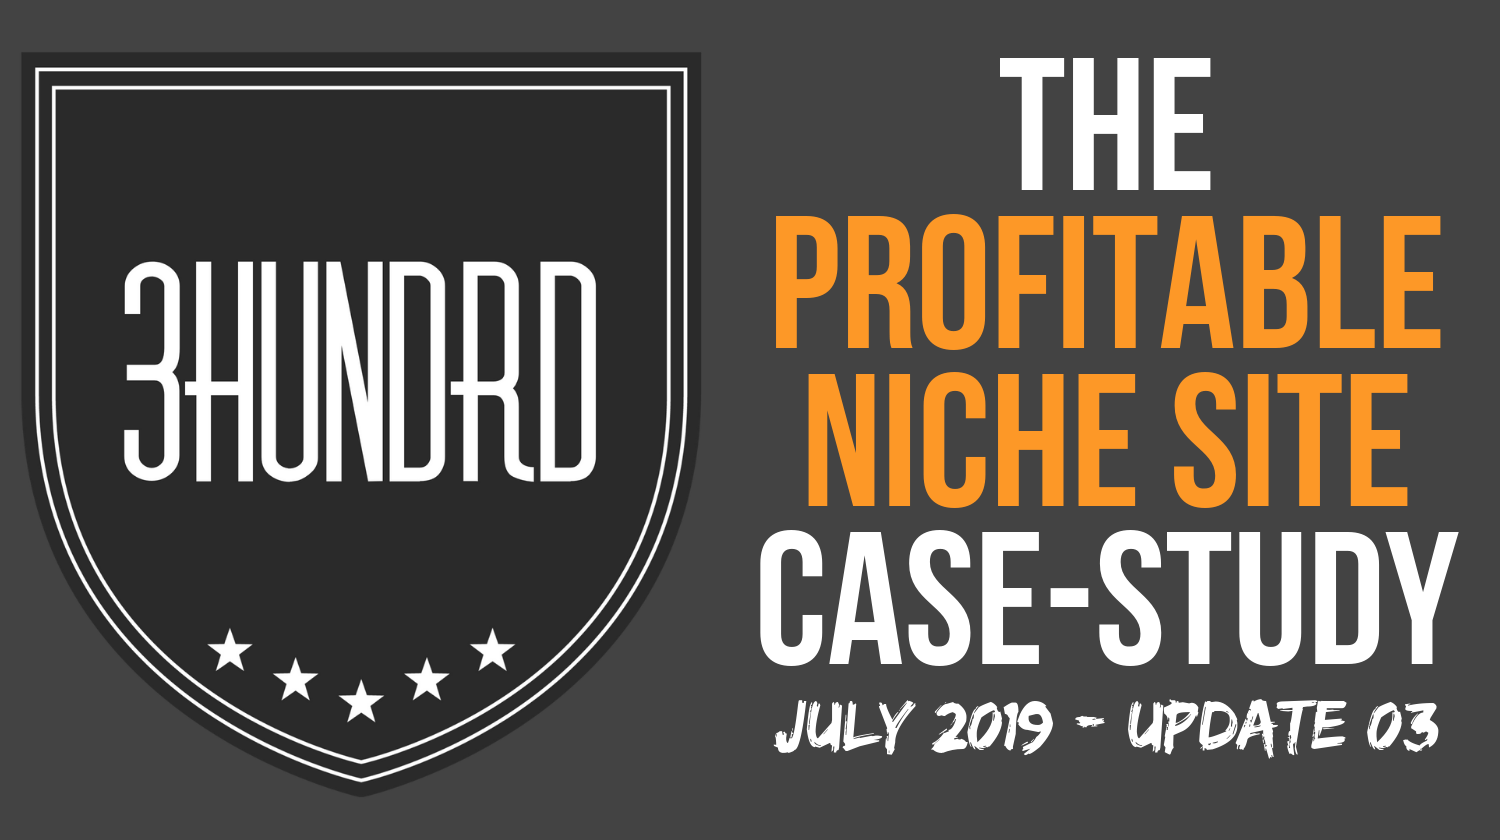 profitable niche site case study update 3